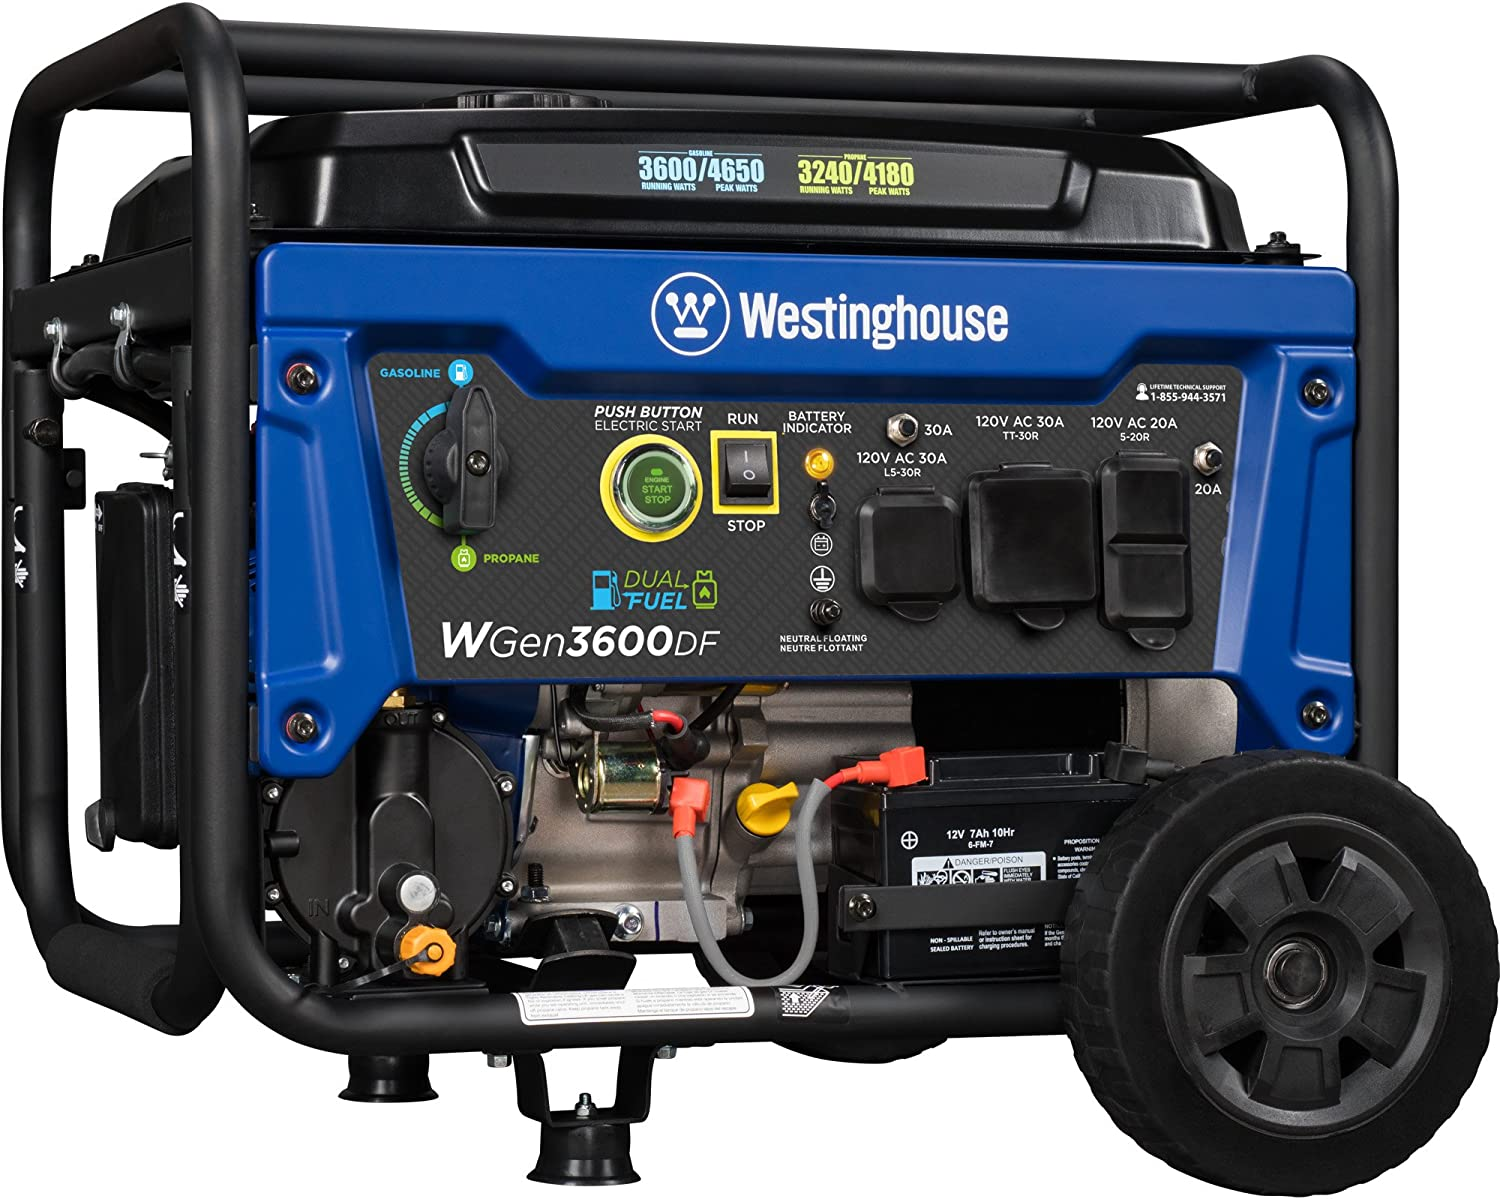 Best Home Generators For Power Outages 2020 (Top 10) 15